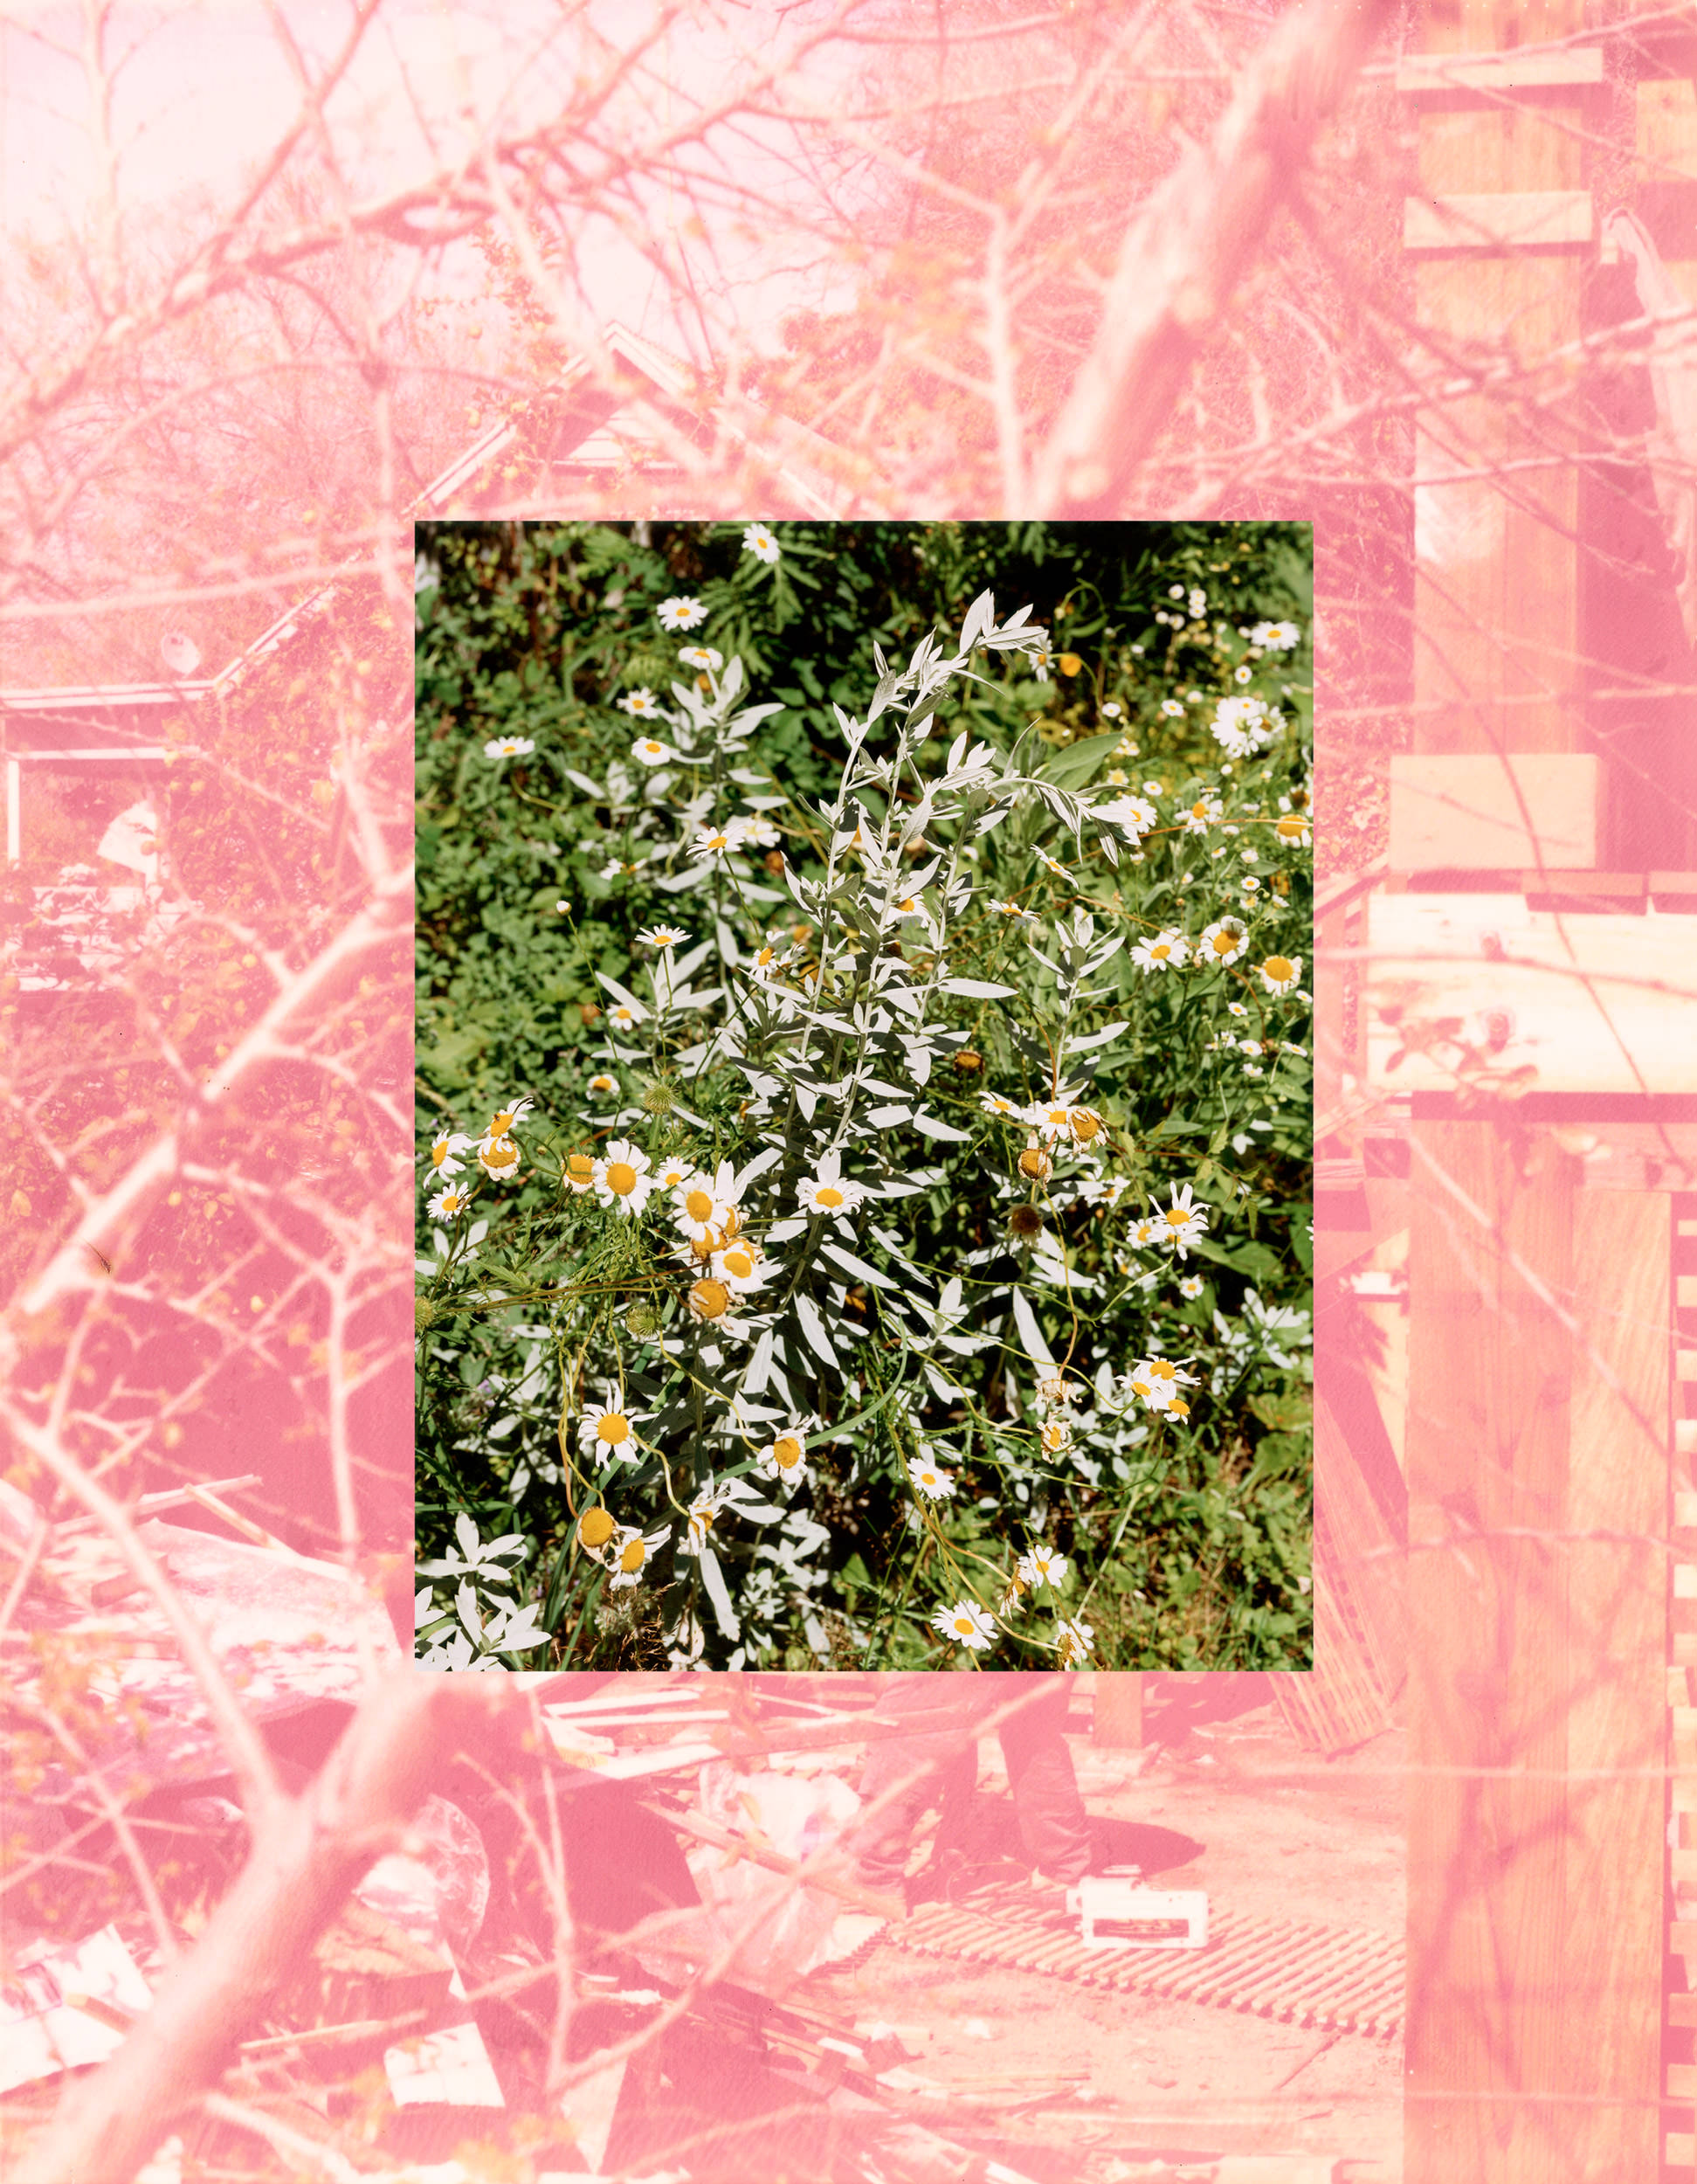 Image of Roe Ethridge, LA Backyard with Sage and Daisies, 2007